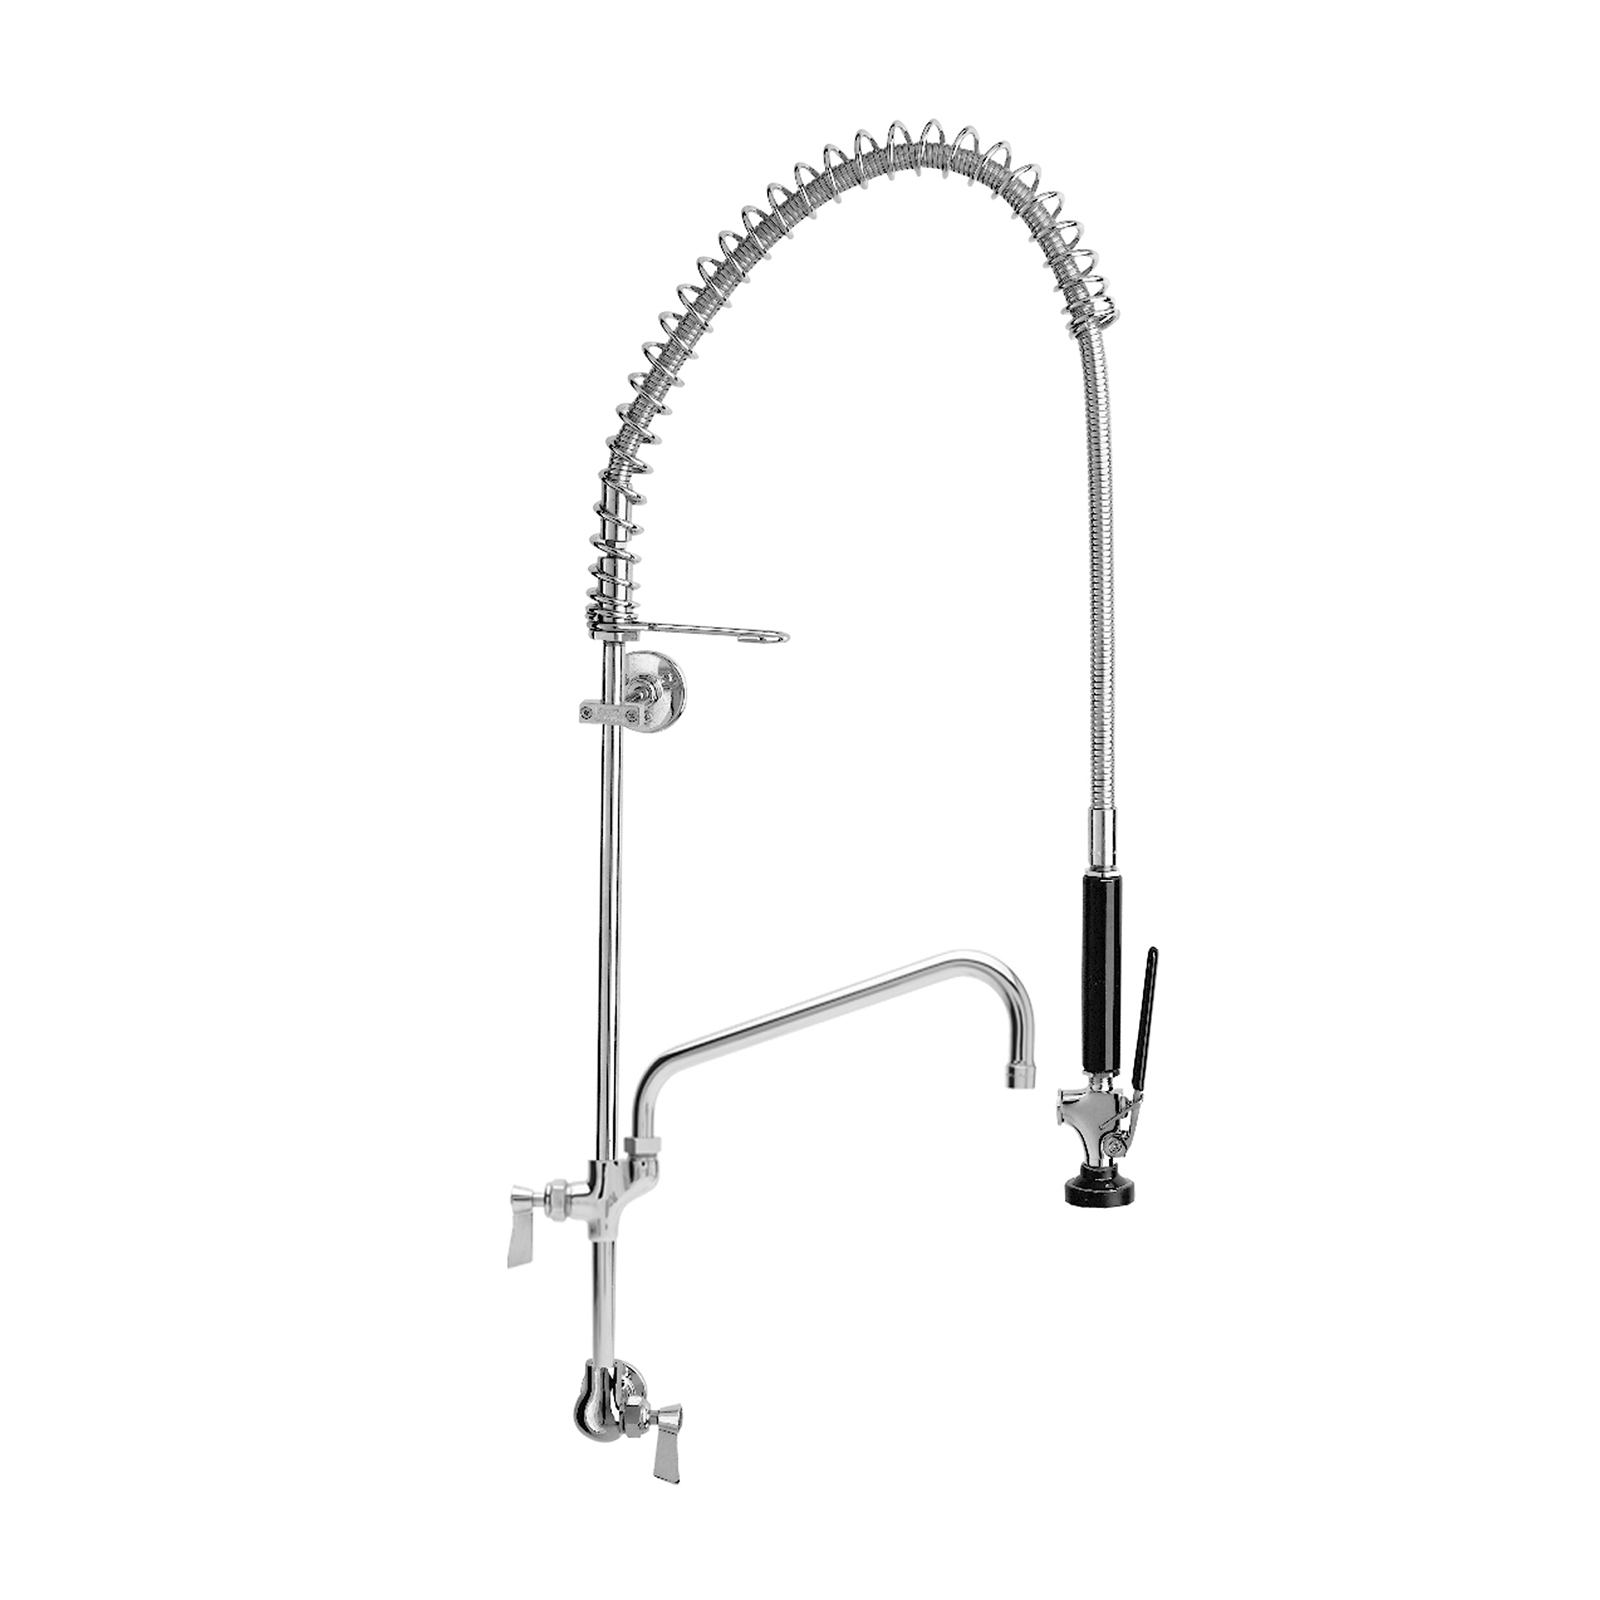 Fisher 34614 pre-rinse faucet assembly, with add on faucet